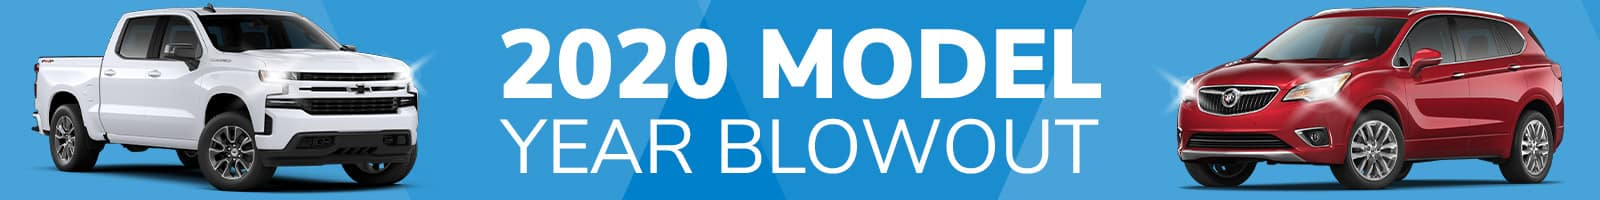 2020 Model Year Blowout with an additional $1,000 off